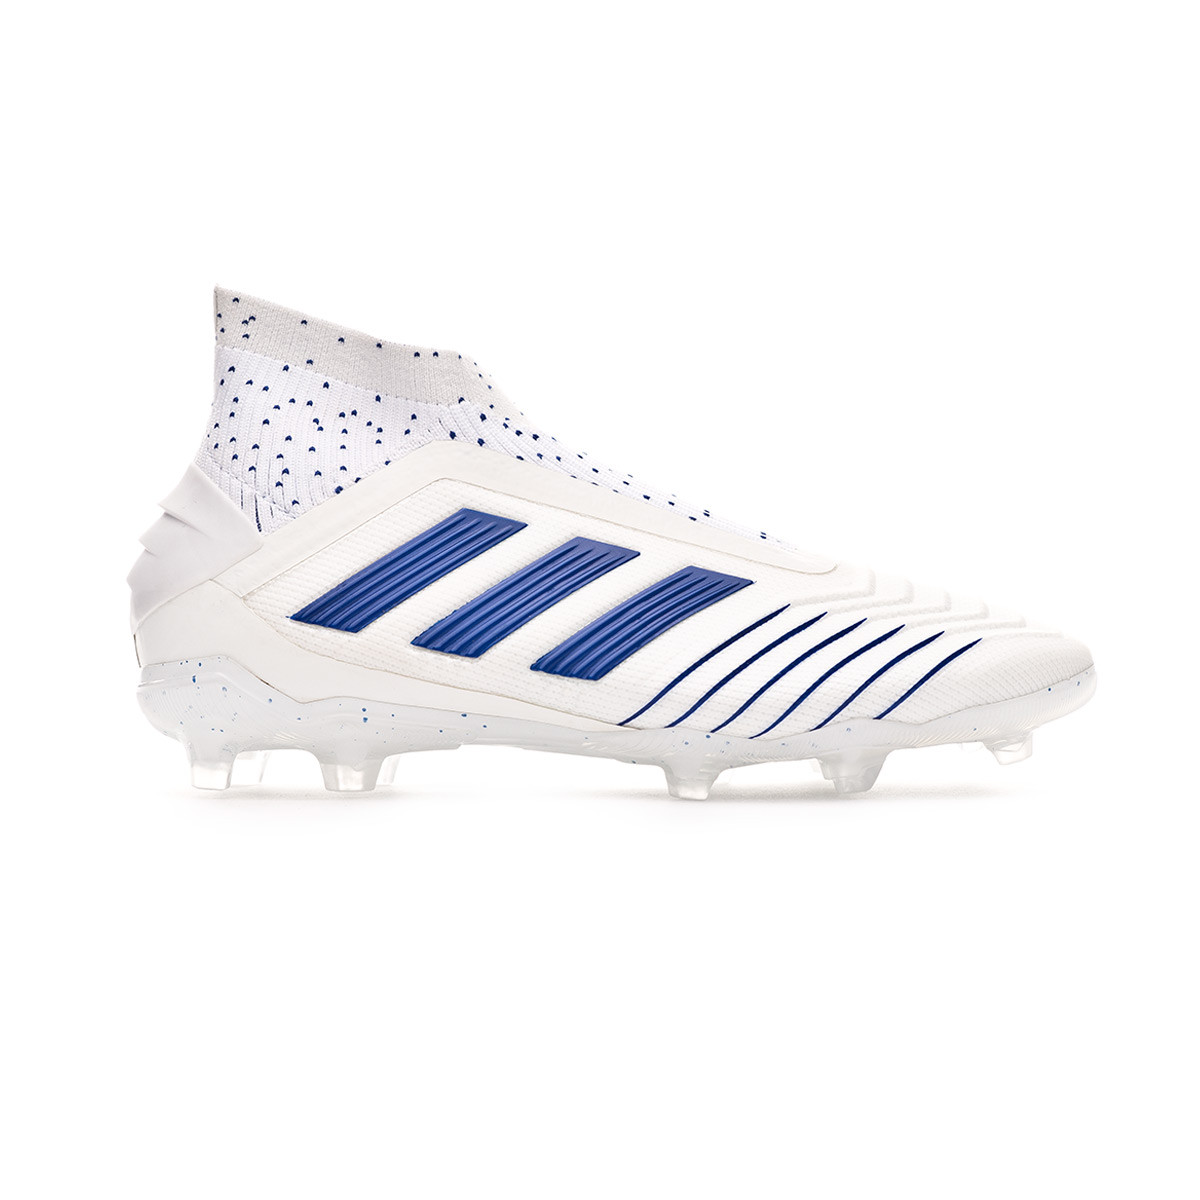 e3f9e474ccd9 Football Boots adidas Kids Predator 19+ FG White-Bold blue - Nike Mercurial  Superfly | Shop Nike Soccer Cleats ypsoccer.com